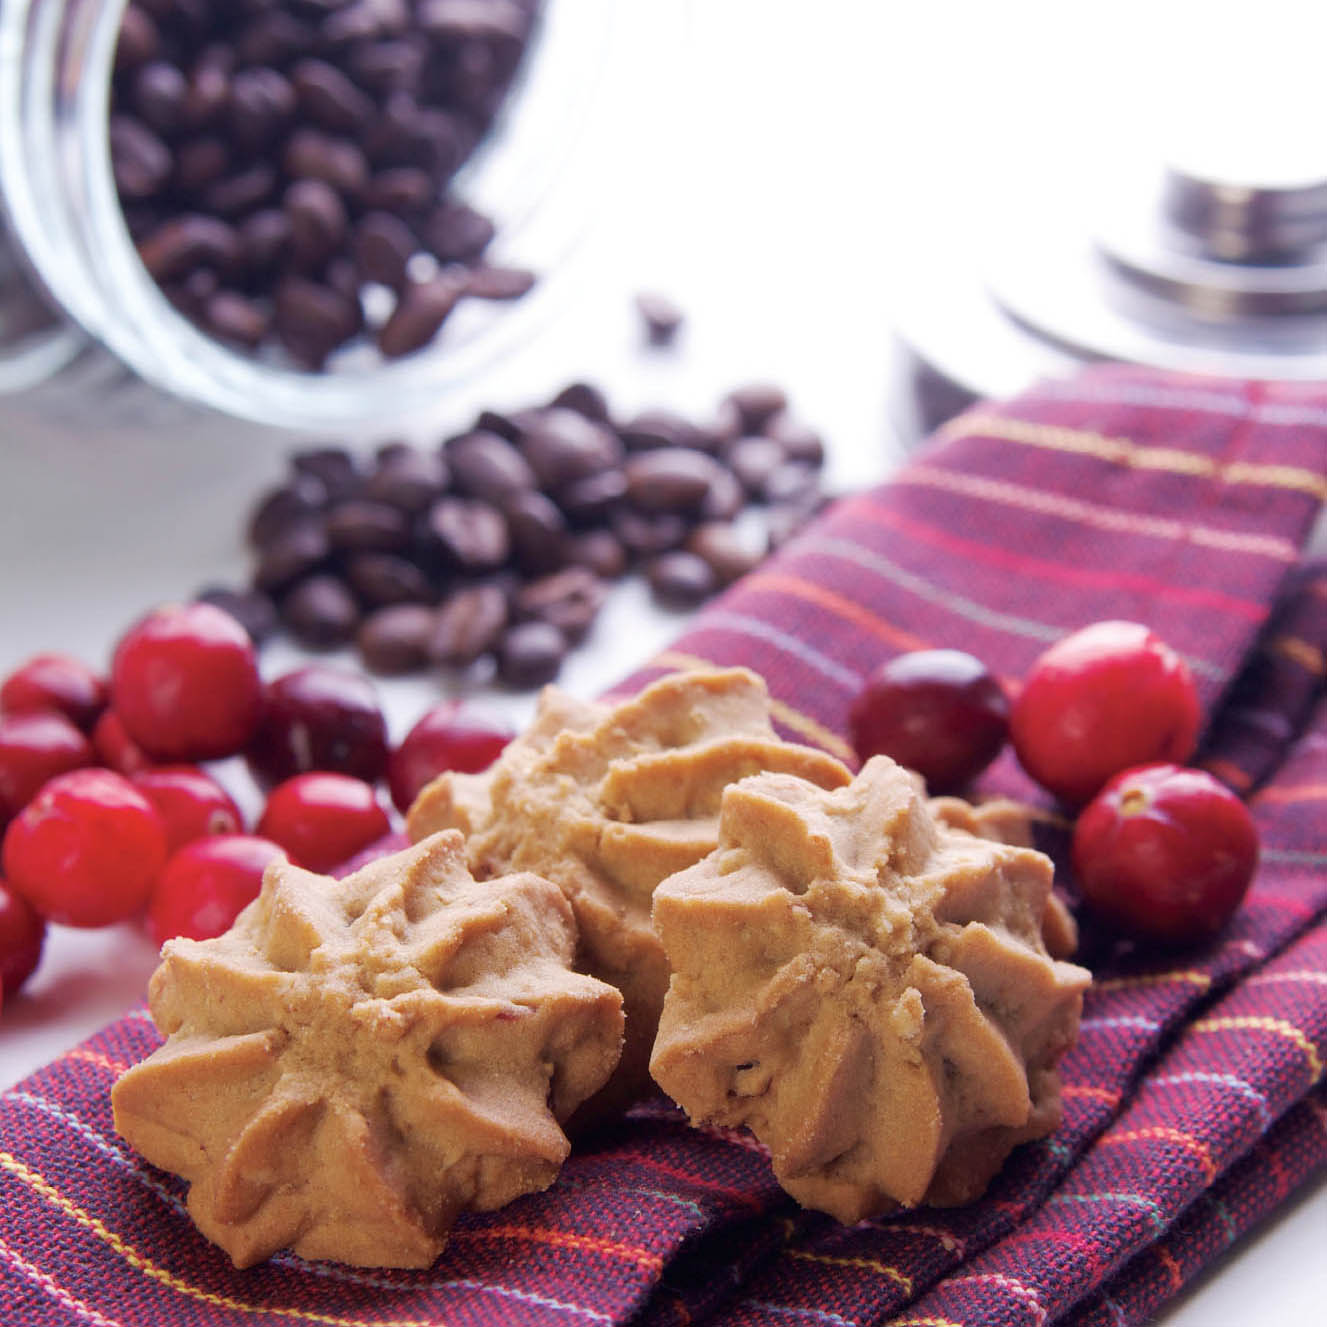 港式蔓越莓咖啡酥饼HK Cranberry Coffee Cookies